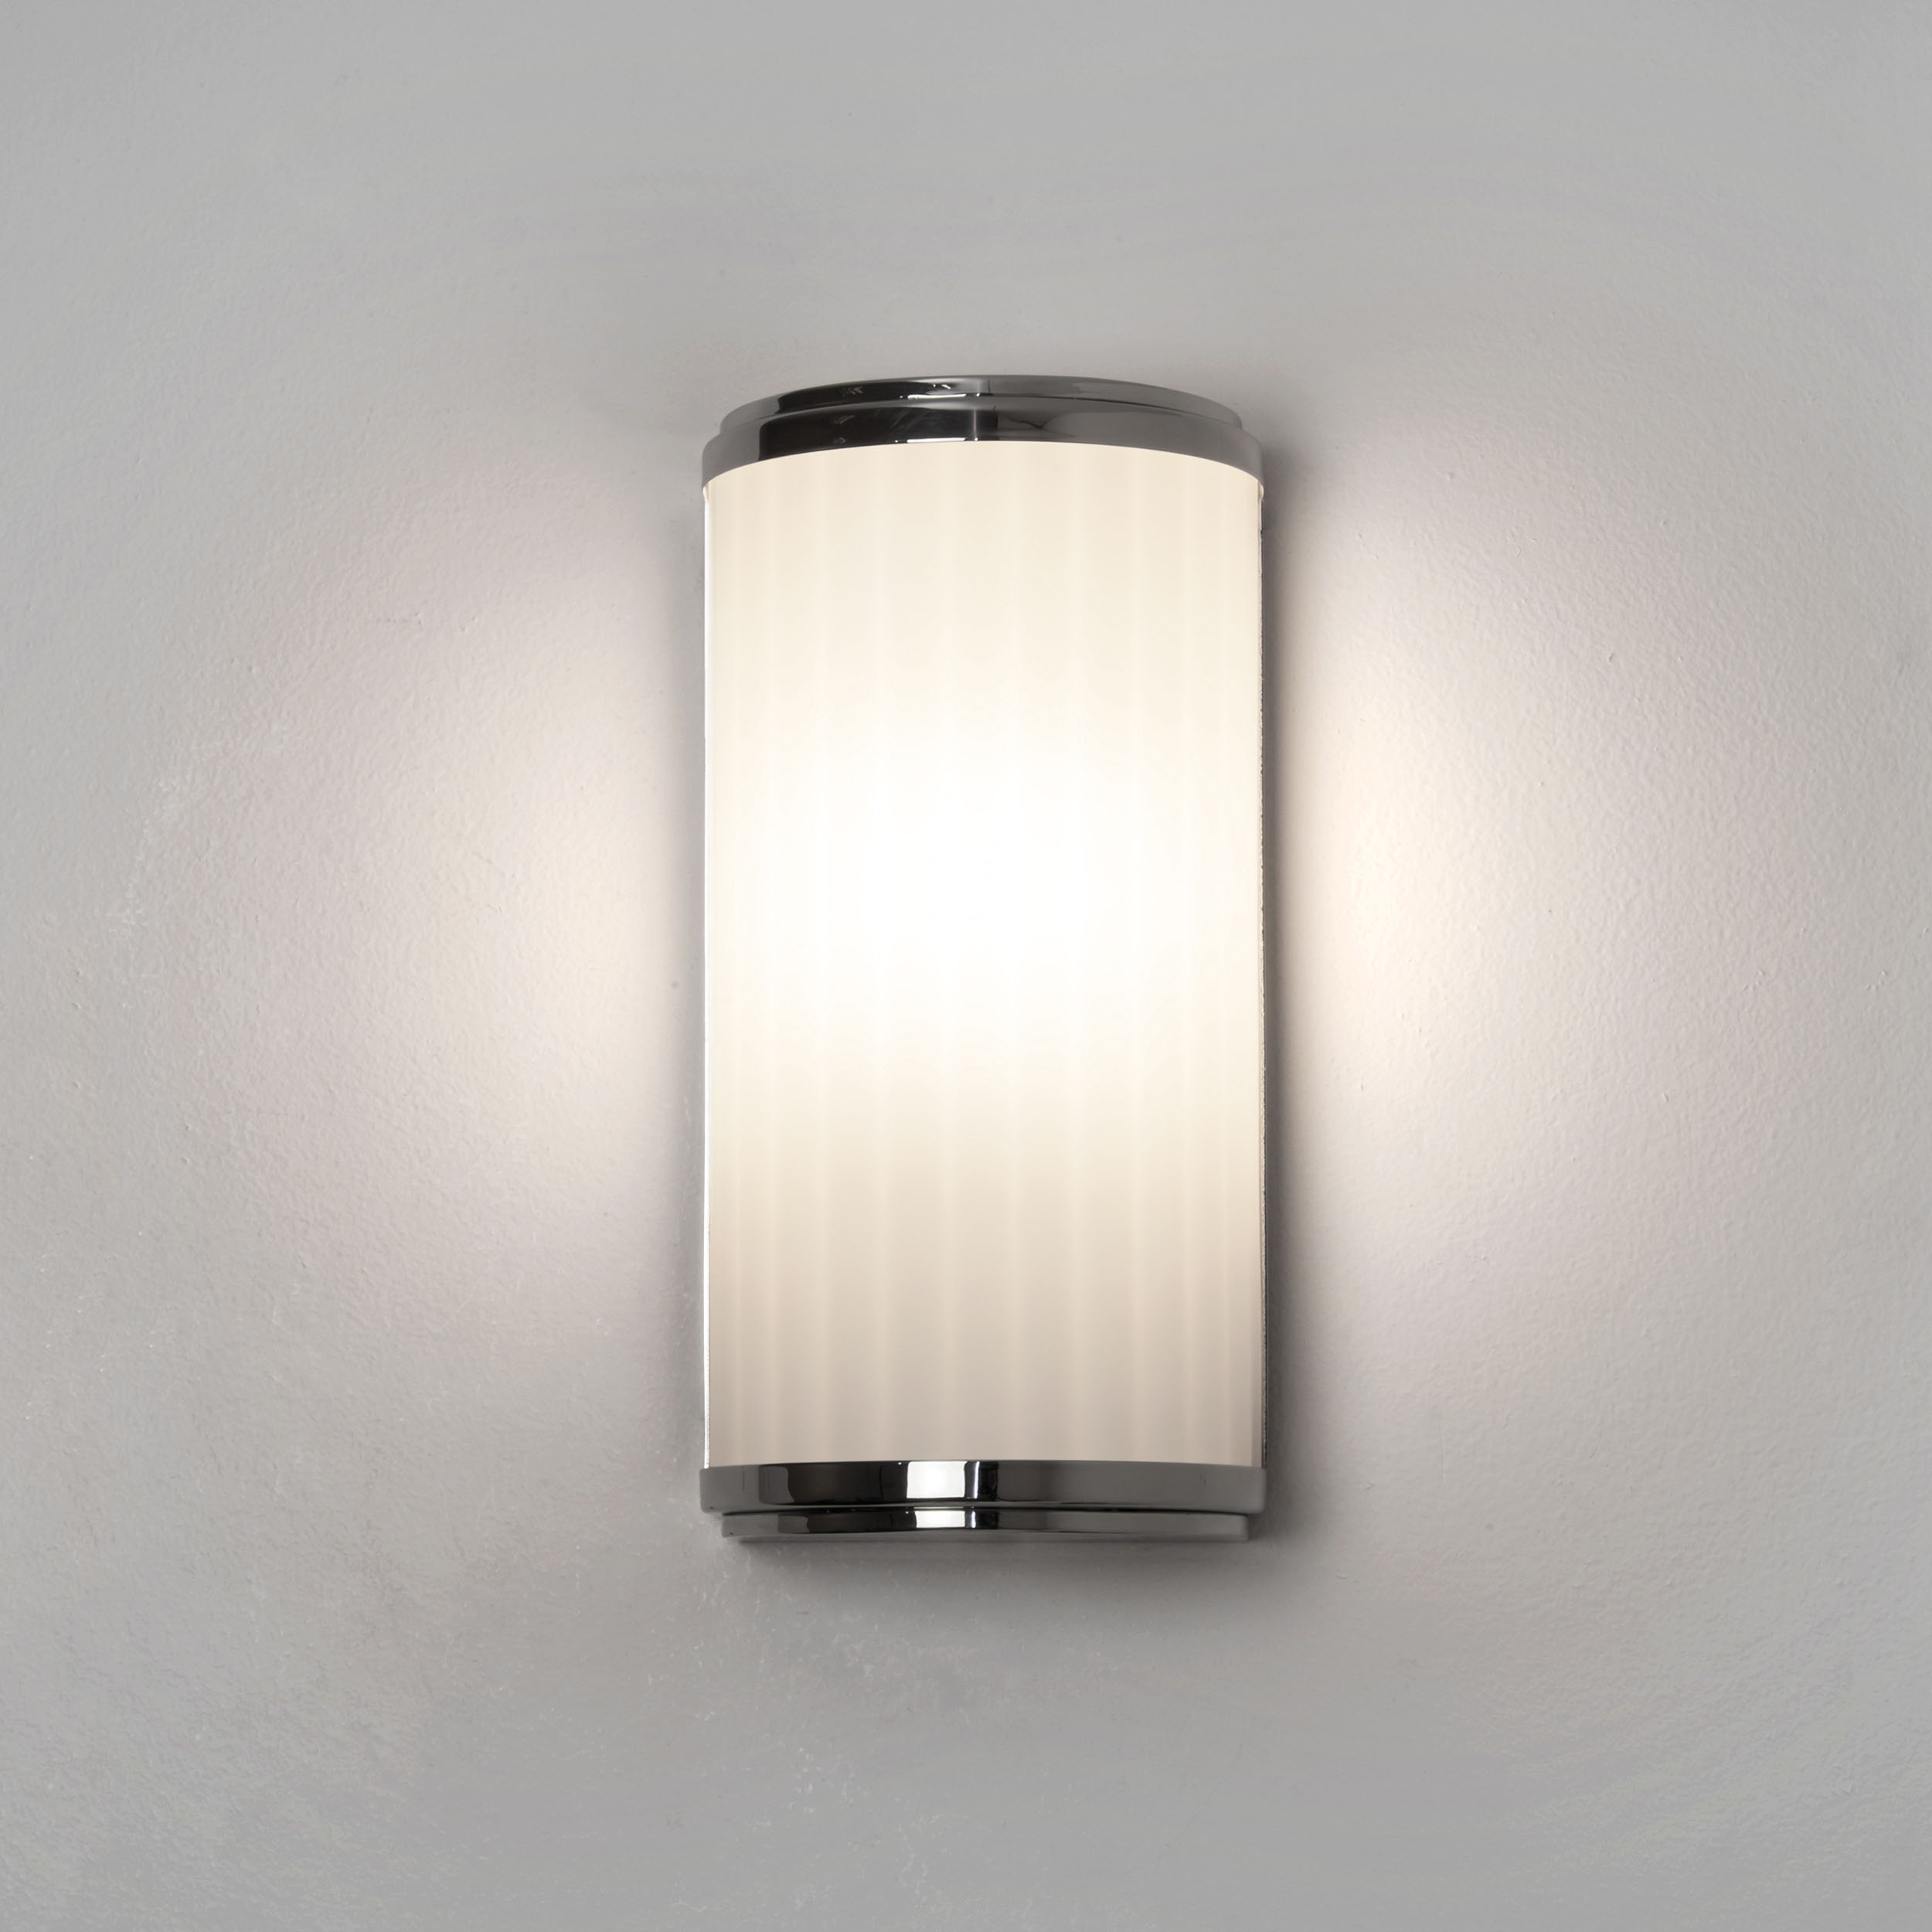 ASTRO MONZA 250 3.2W LED bathroom IP44 wall mirror light polished chrome glass